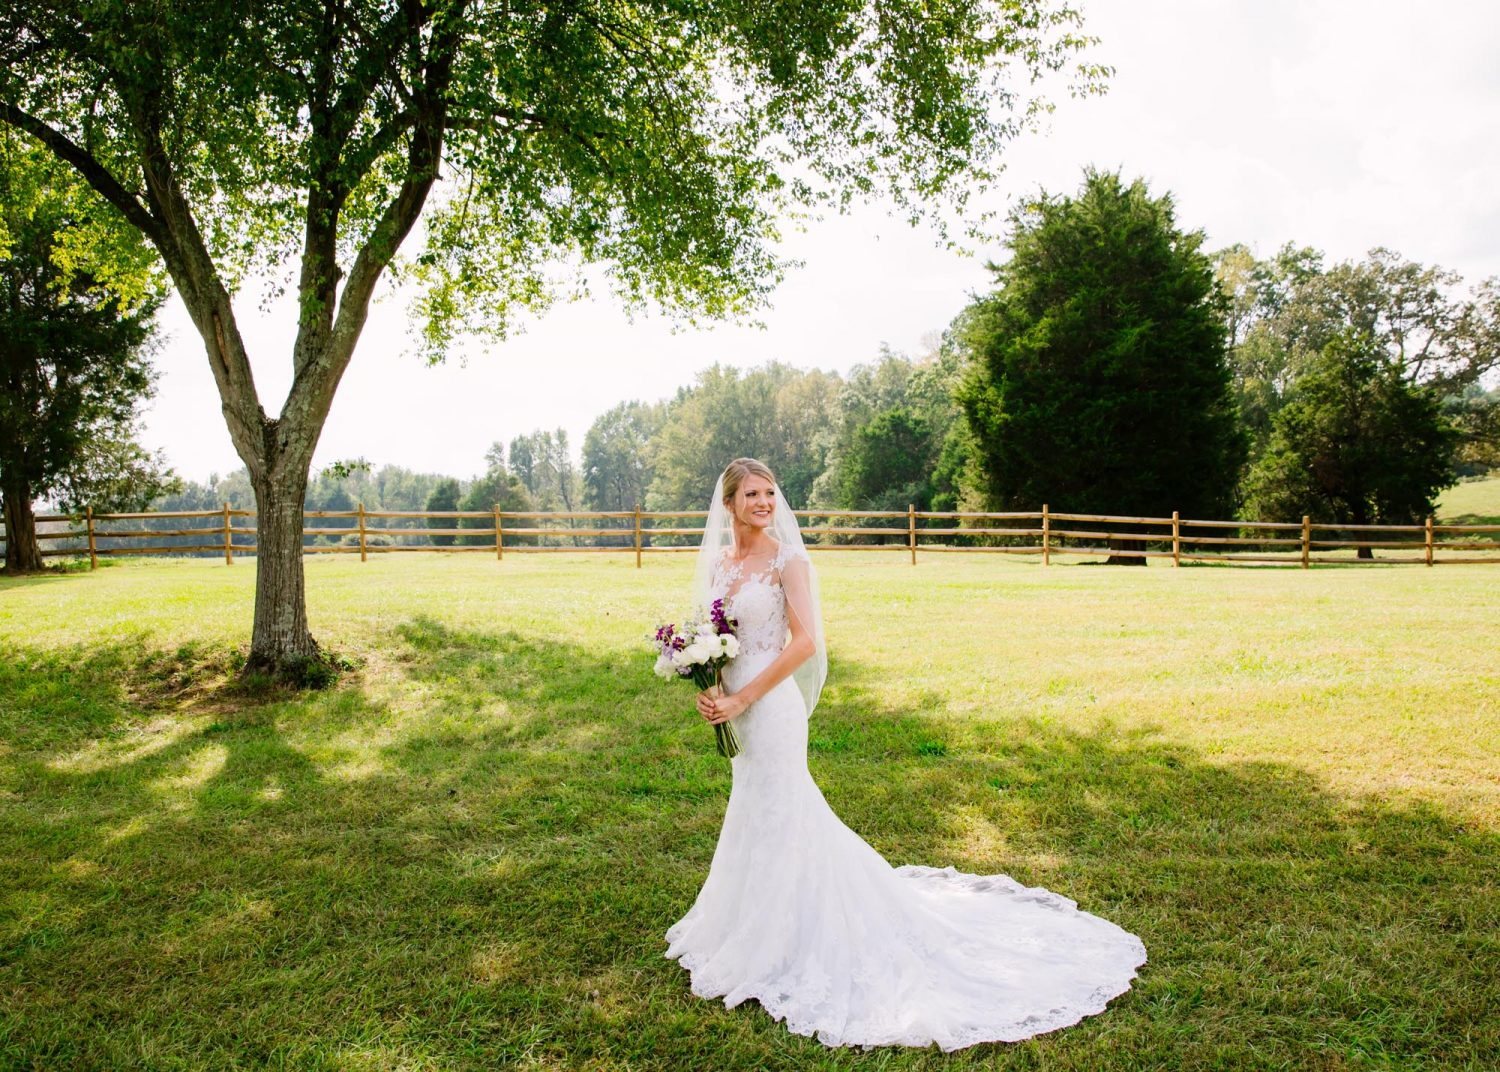 Waynesville, NC Wedding Photography | Bride Solo Portrait